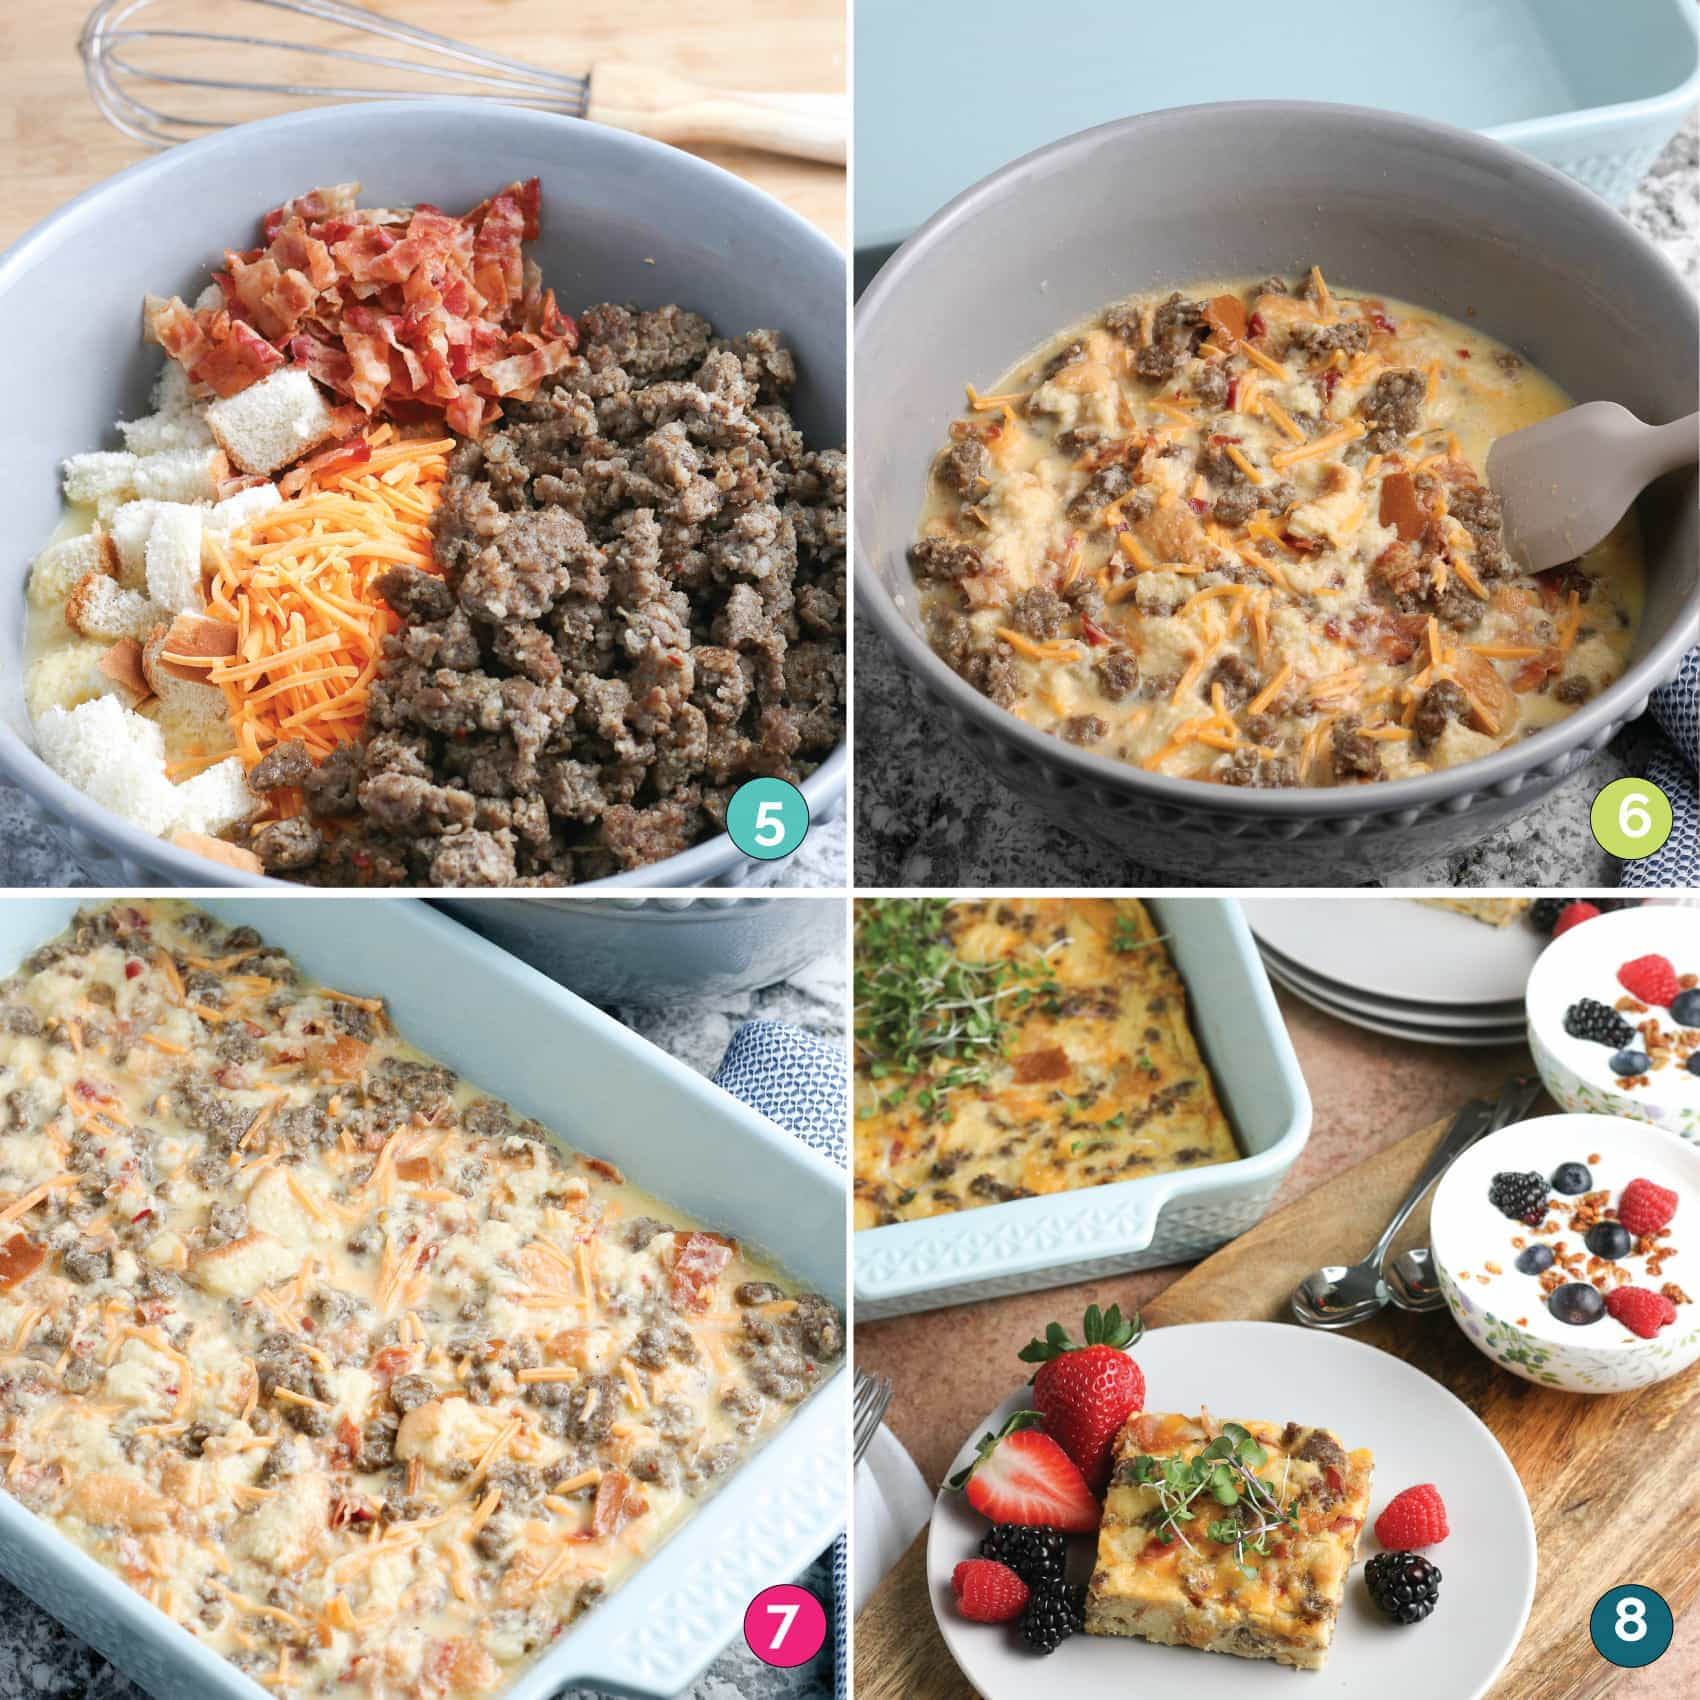 Gluten Free Overnight Breakfast Casserole Steps 2